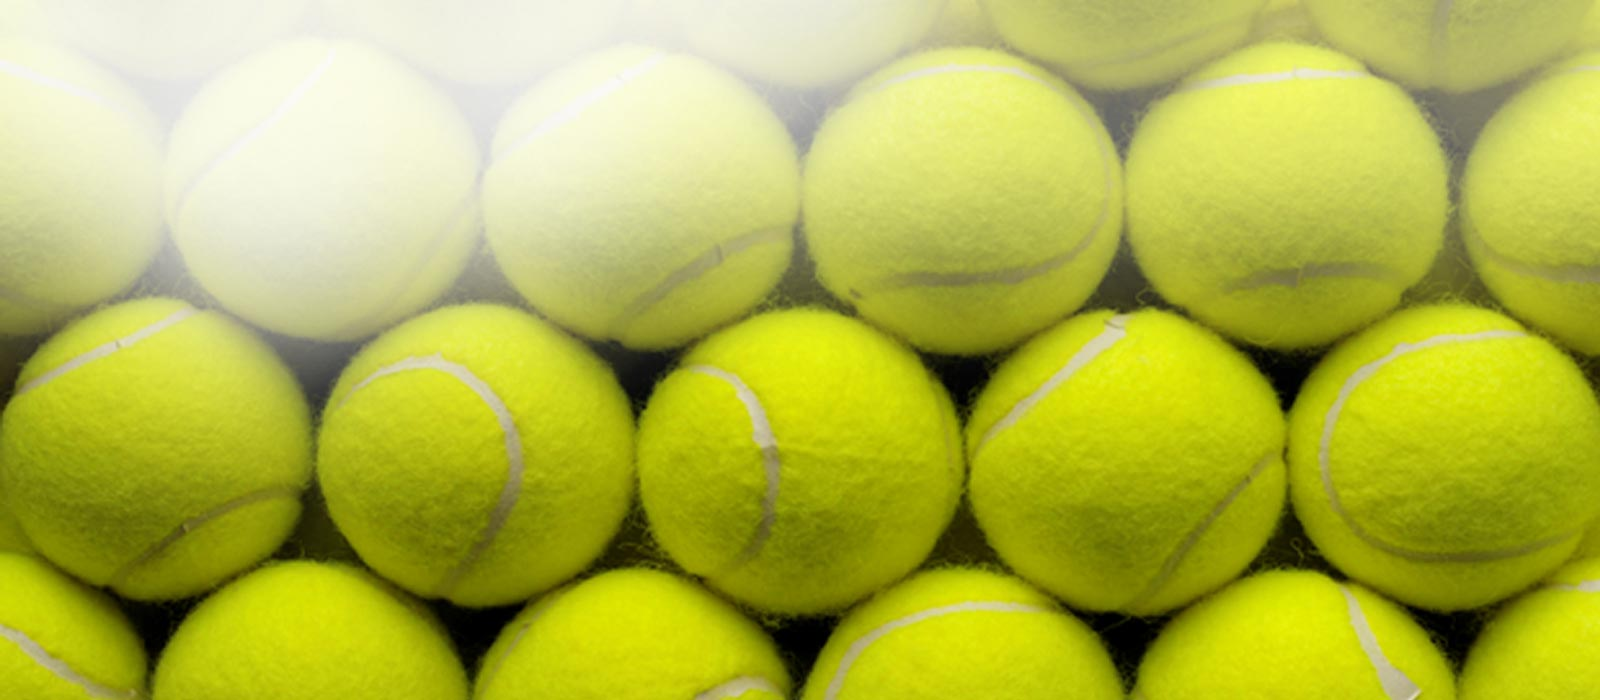 rows-of-yellow-tennis-balls-stacked-up